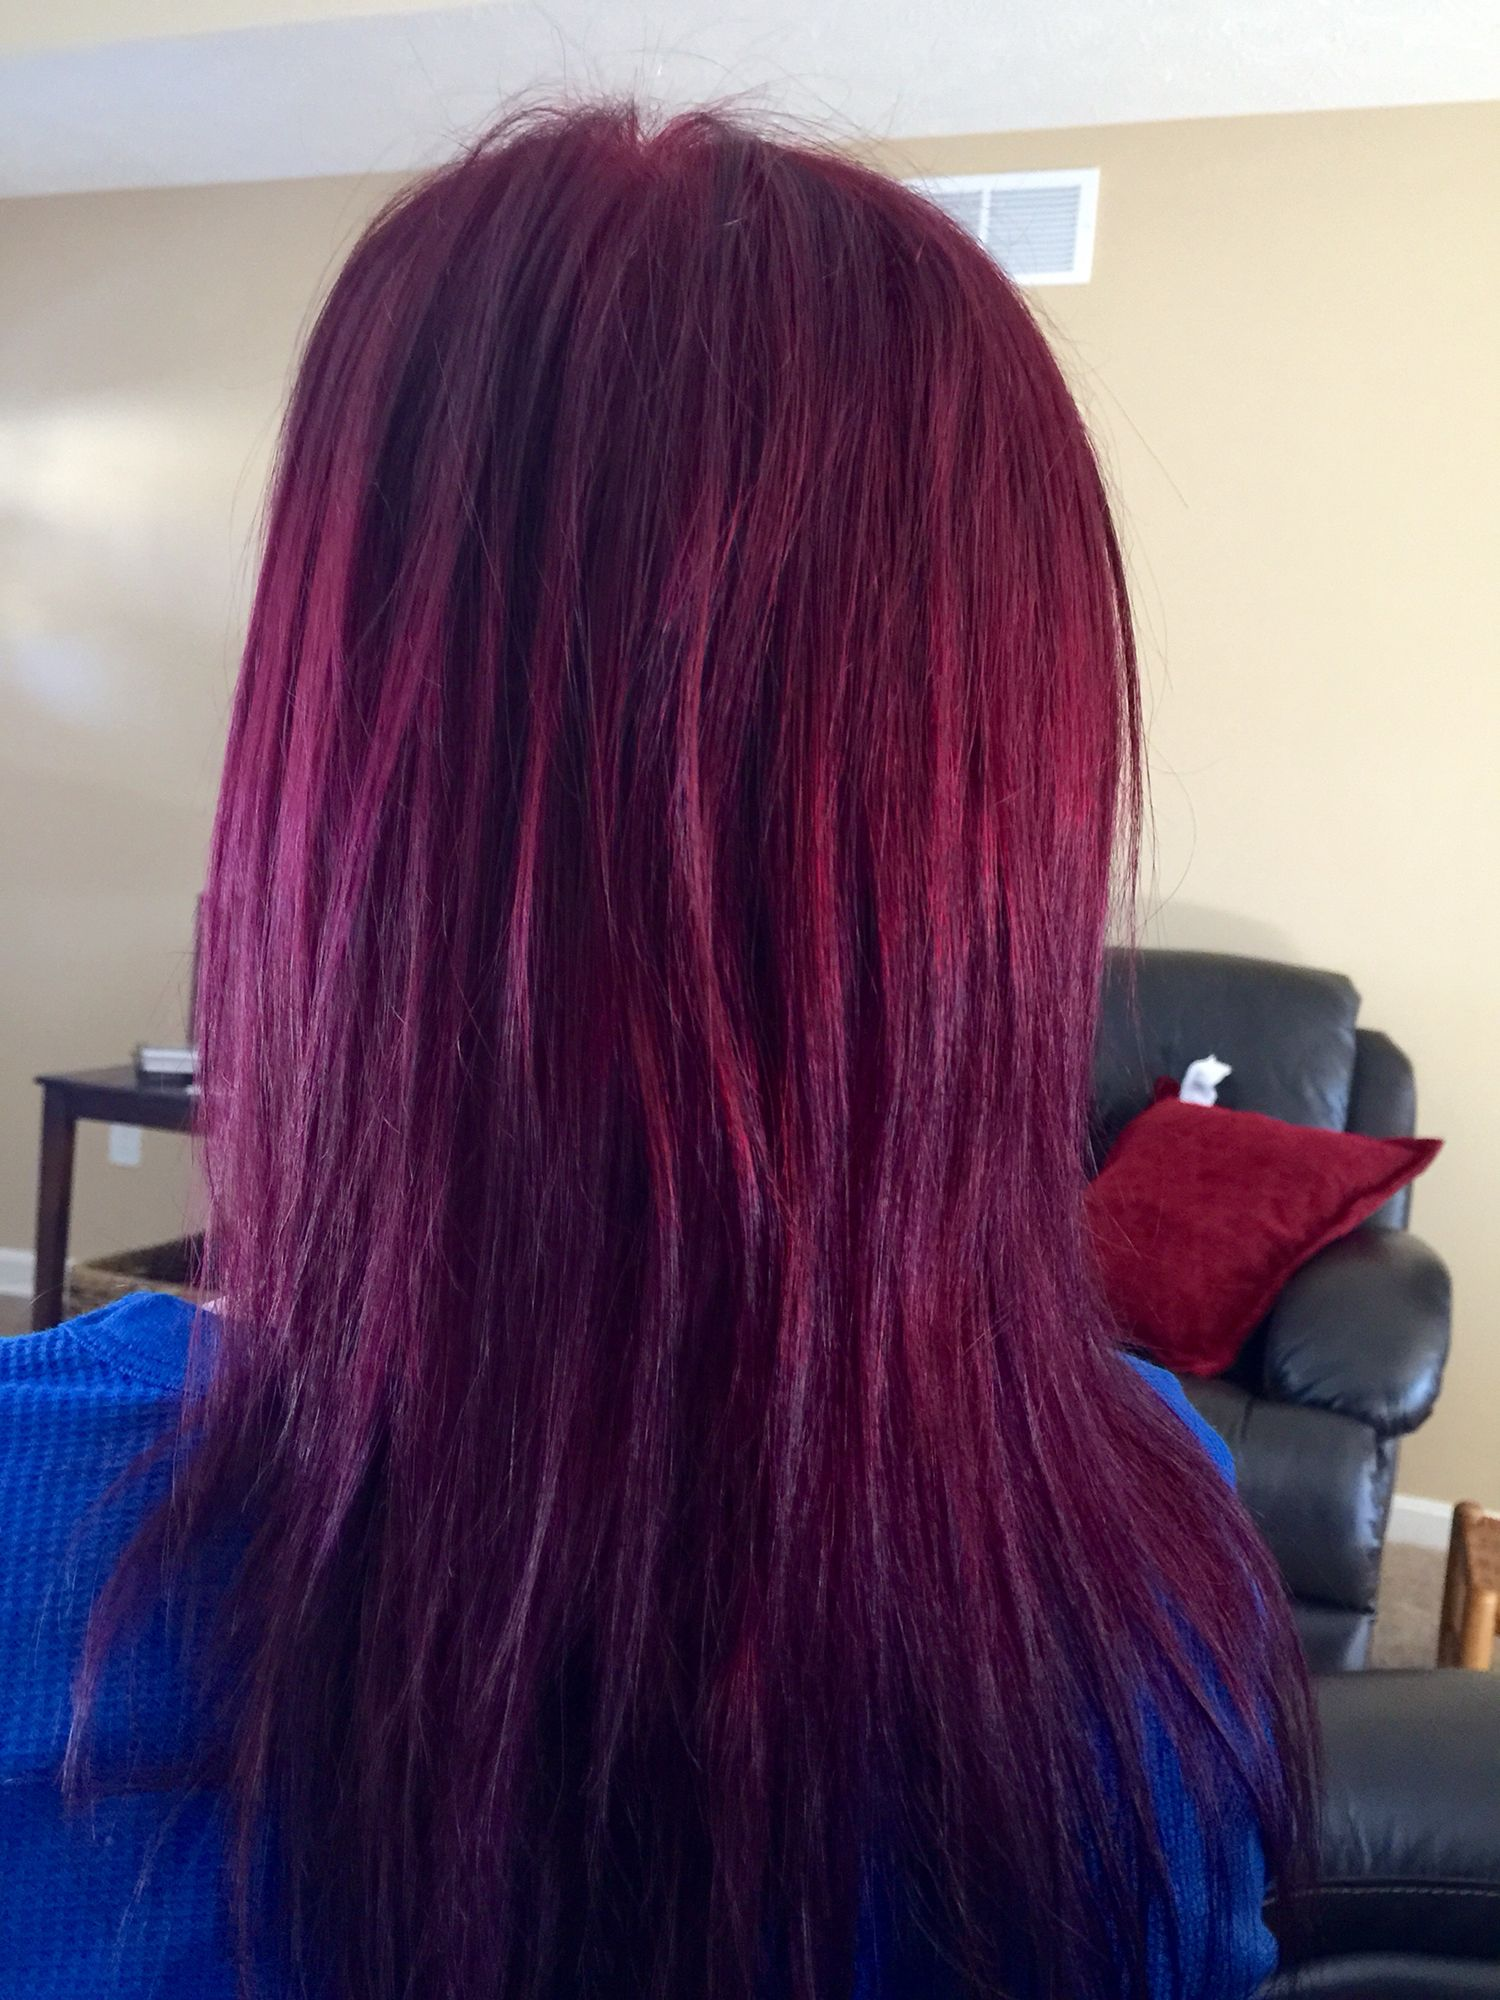 My Hair I Mixed Manic Panic Vampire Red Purple Haze Burgundyhair Purplehair Redhair Dyed Hair Purple Burgundy Hair Red Purple Hair